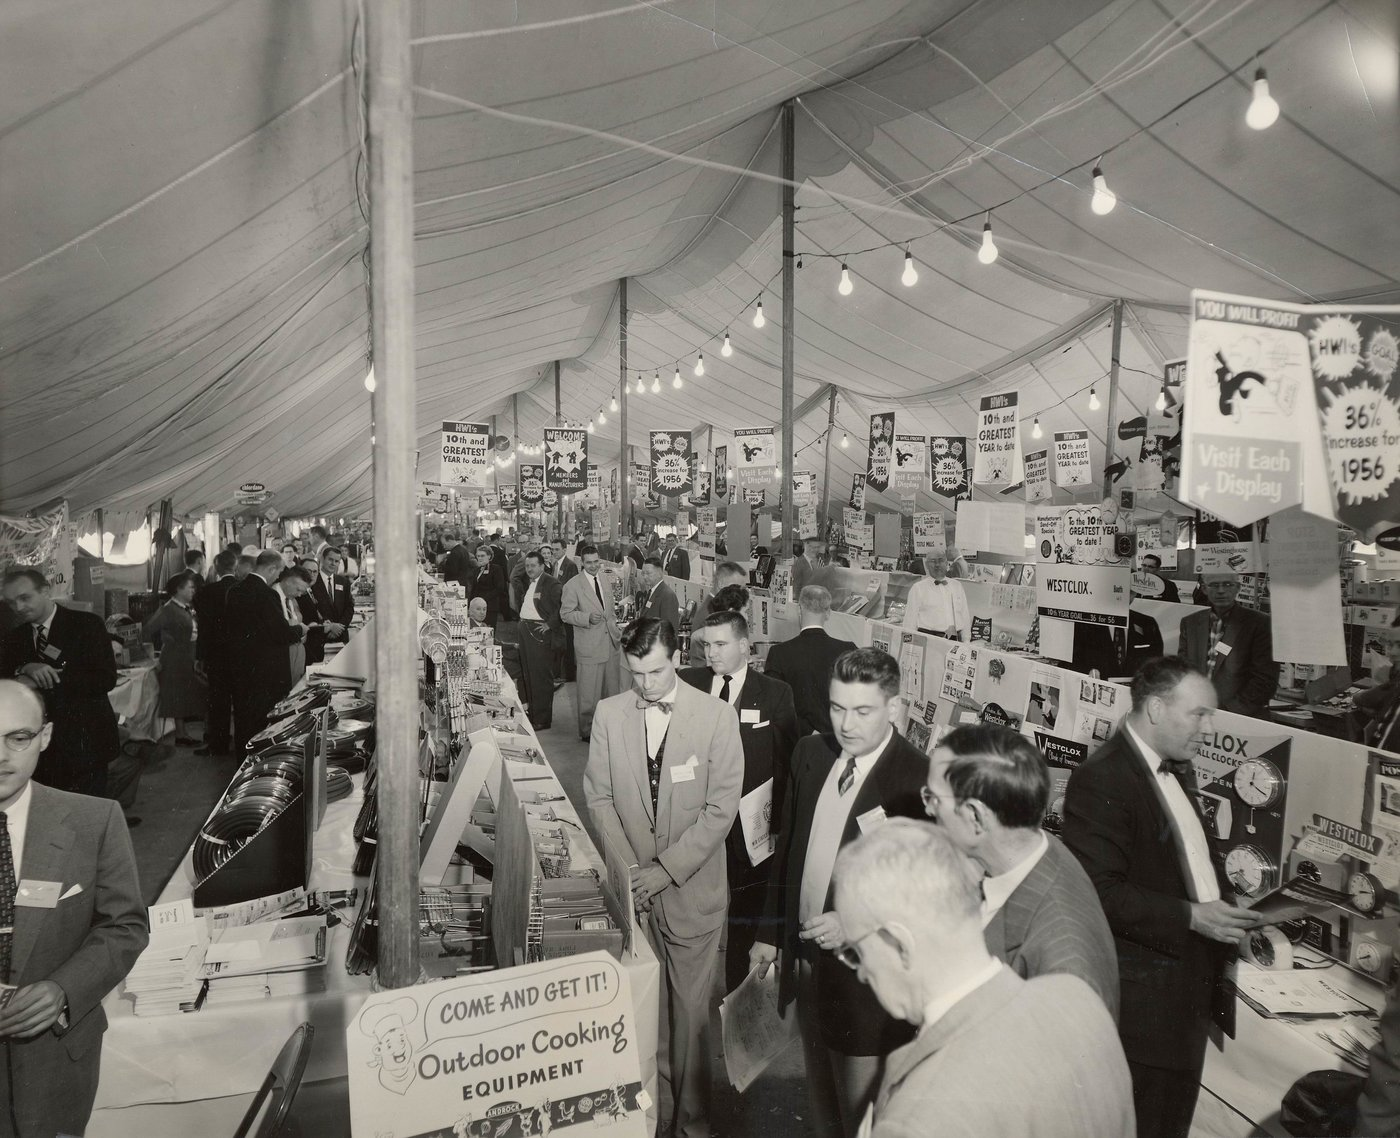 The 1955 buying market was held in a big tent in the parking lot of HWI's warehouse facility.